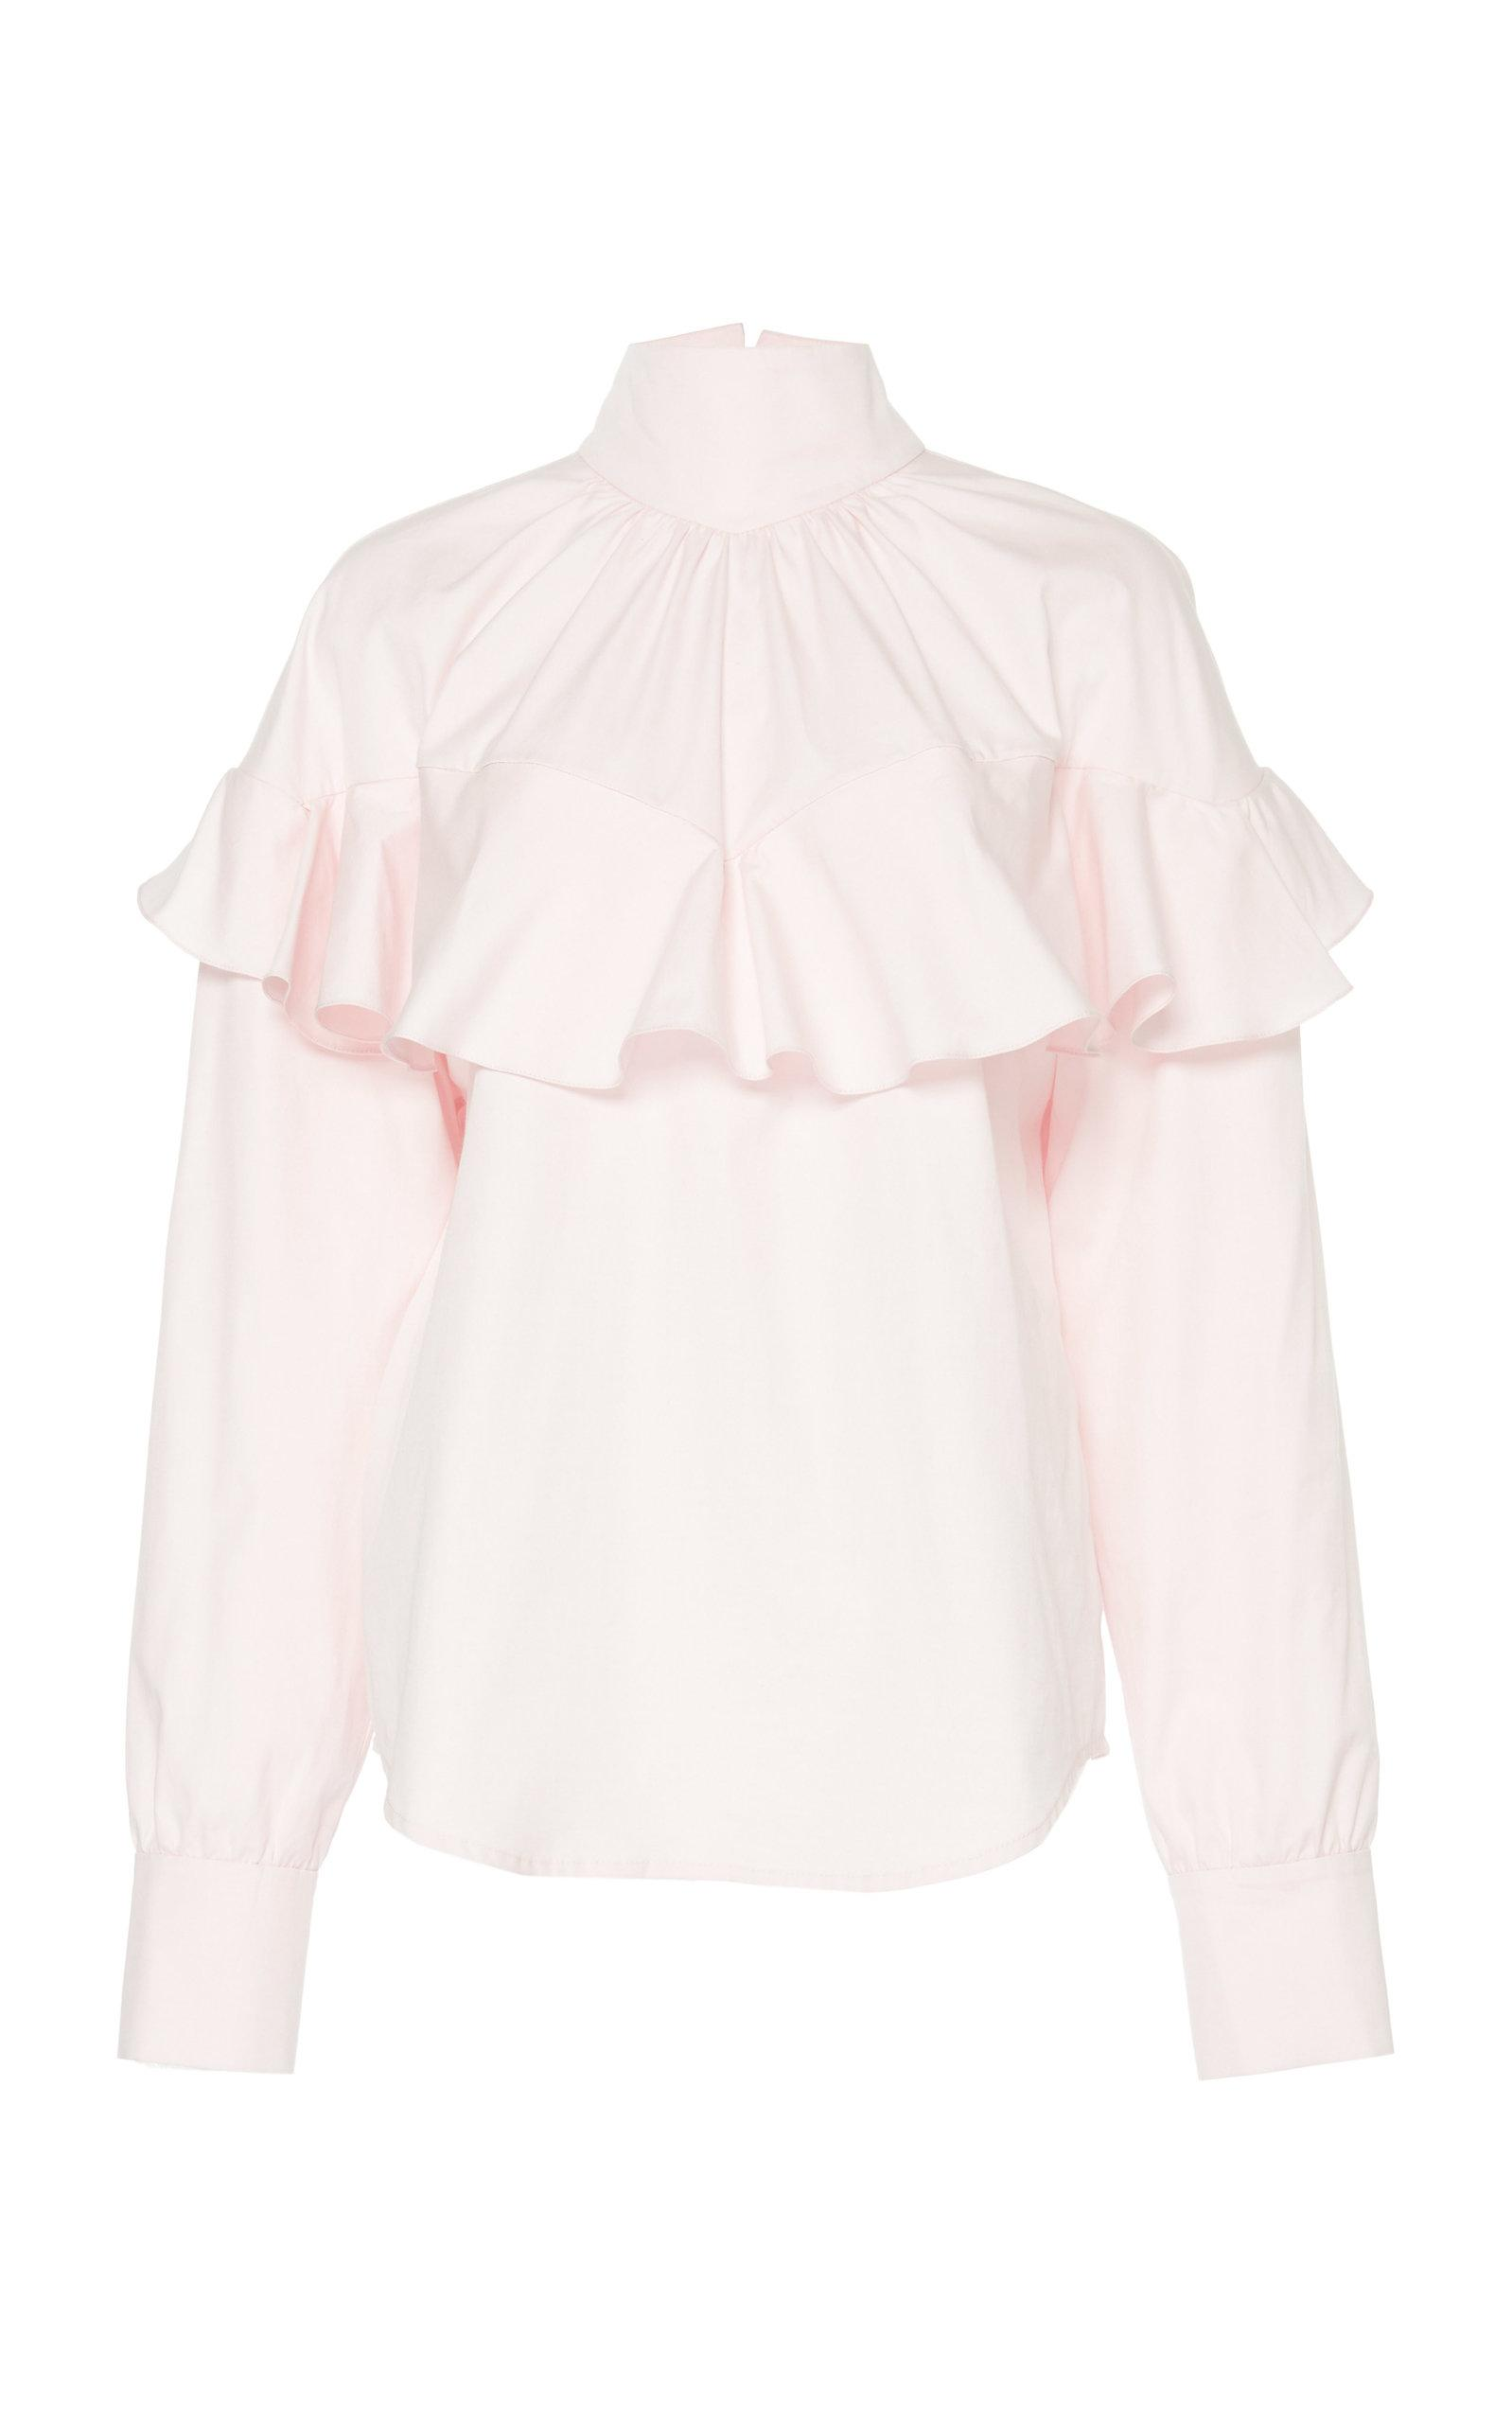 A.w.a.k.e. Front Frill Top In Pink